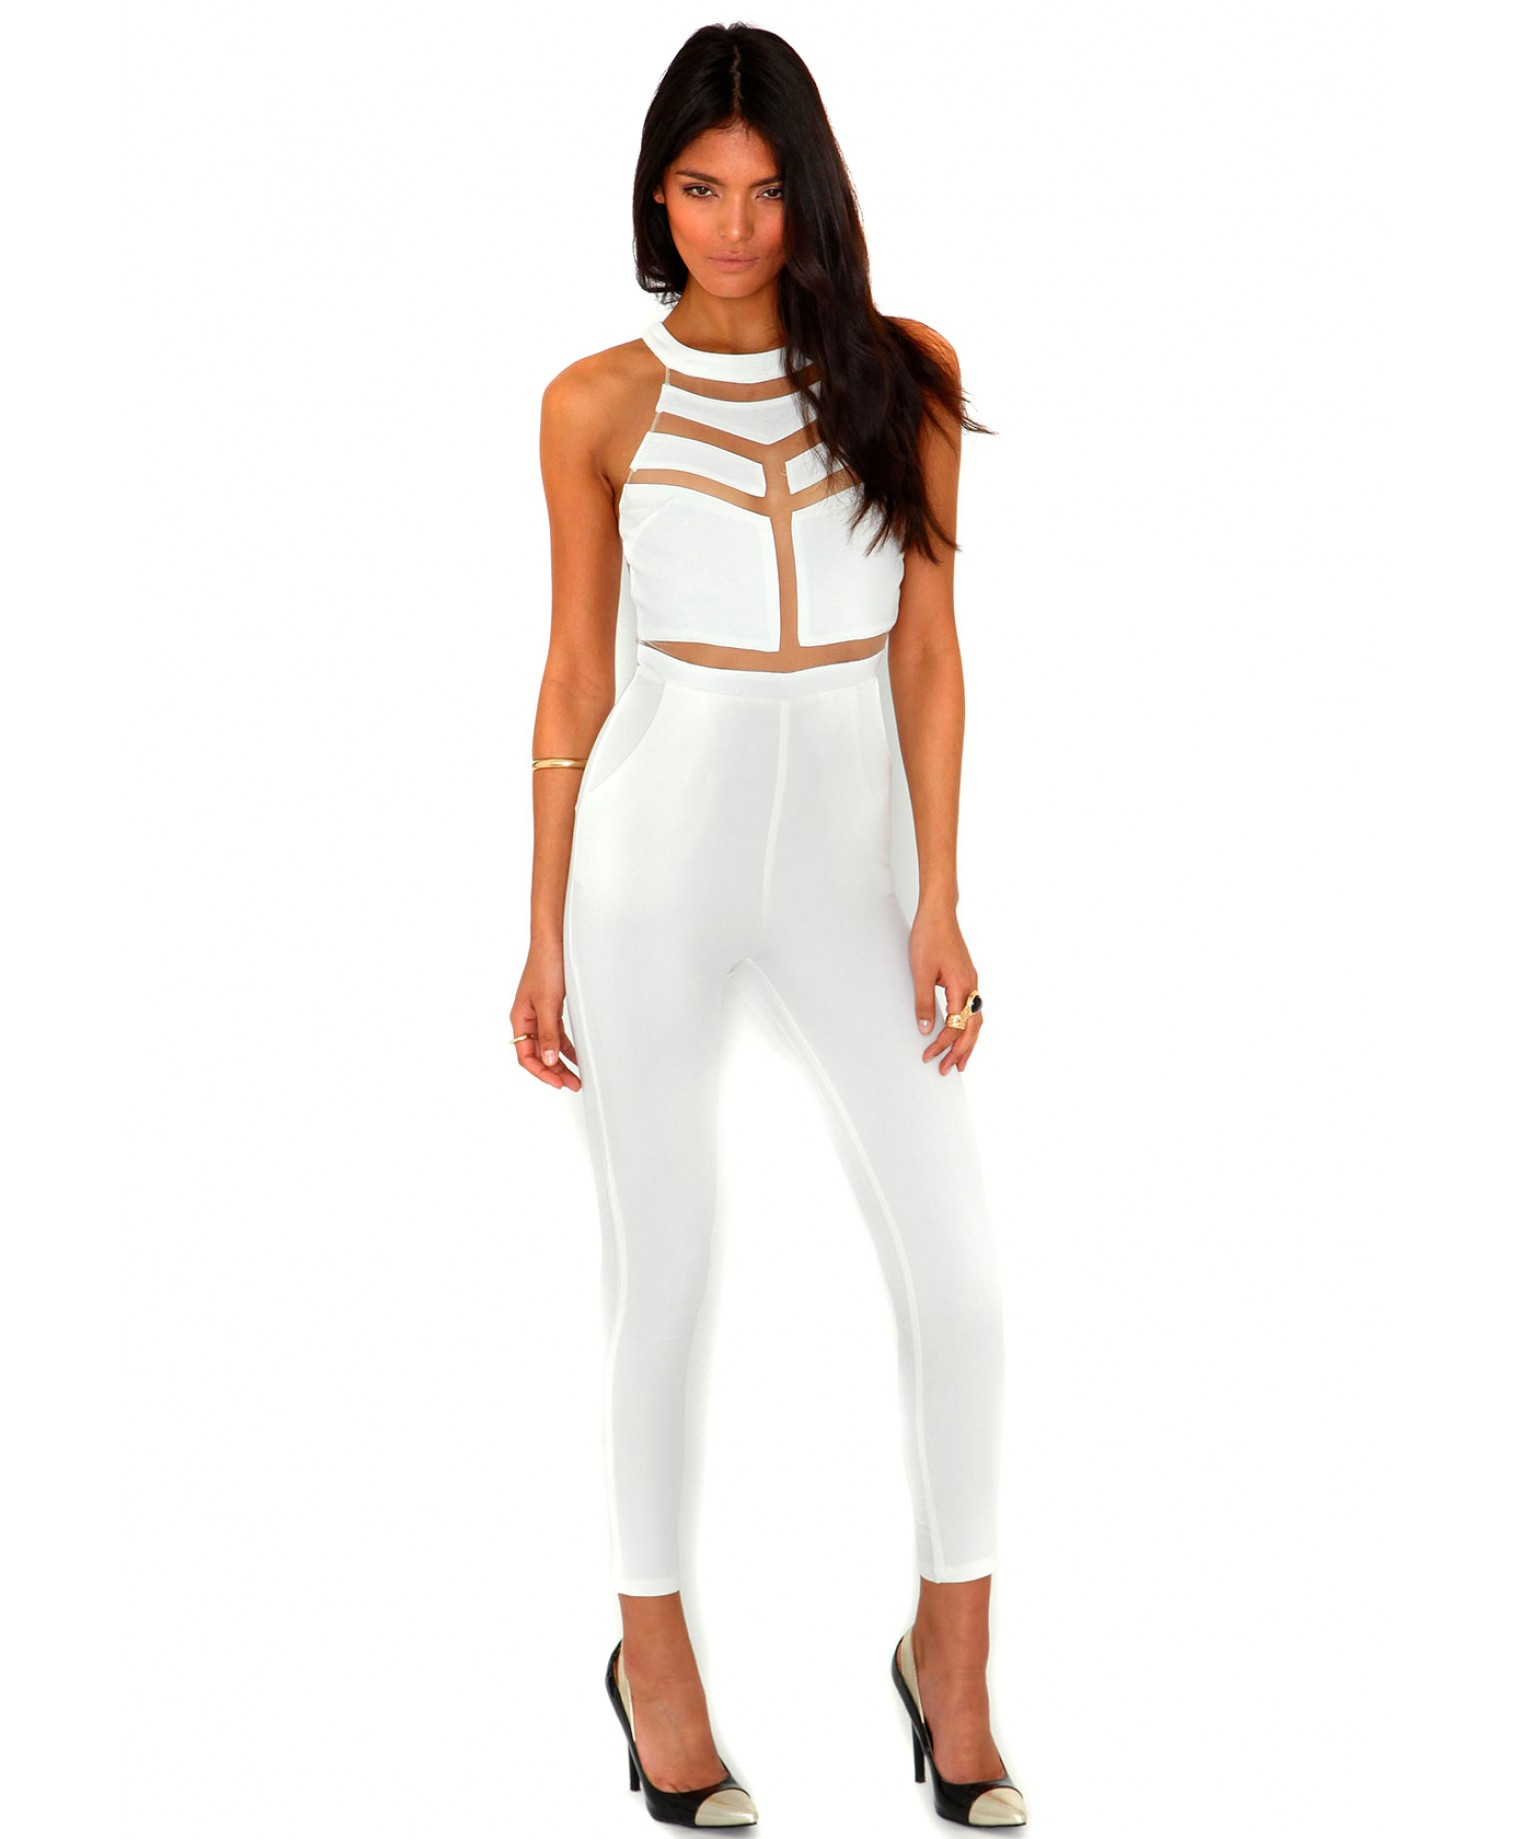 Womens White Jumpsuits And Rompers Breeze Clothing